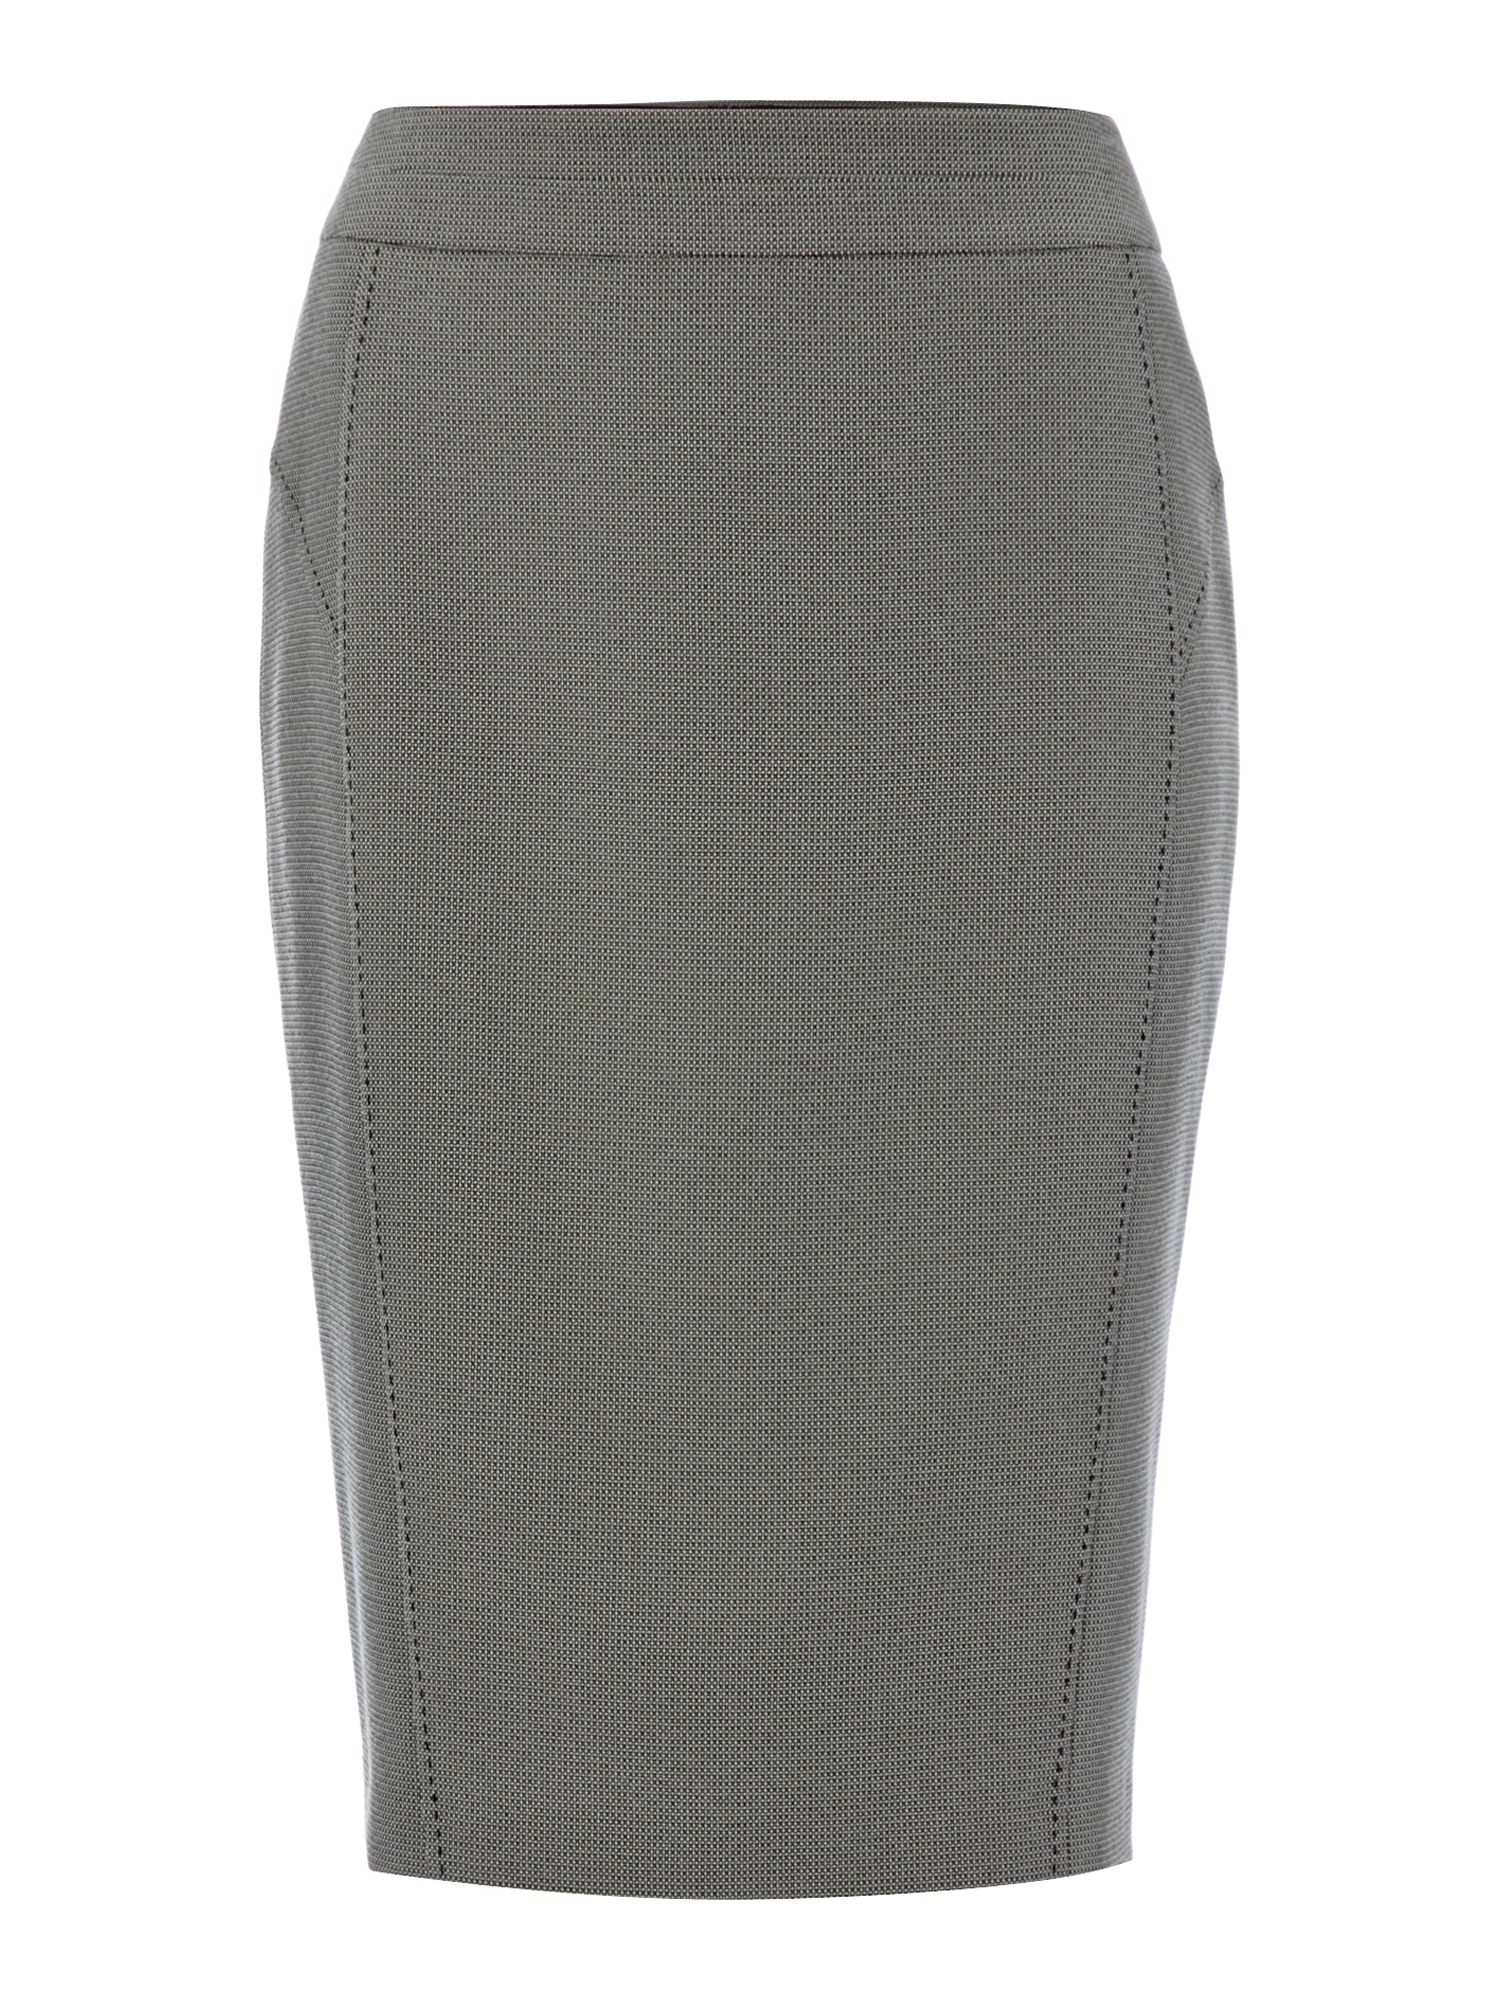 Lottie spot tailored skirt